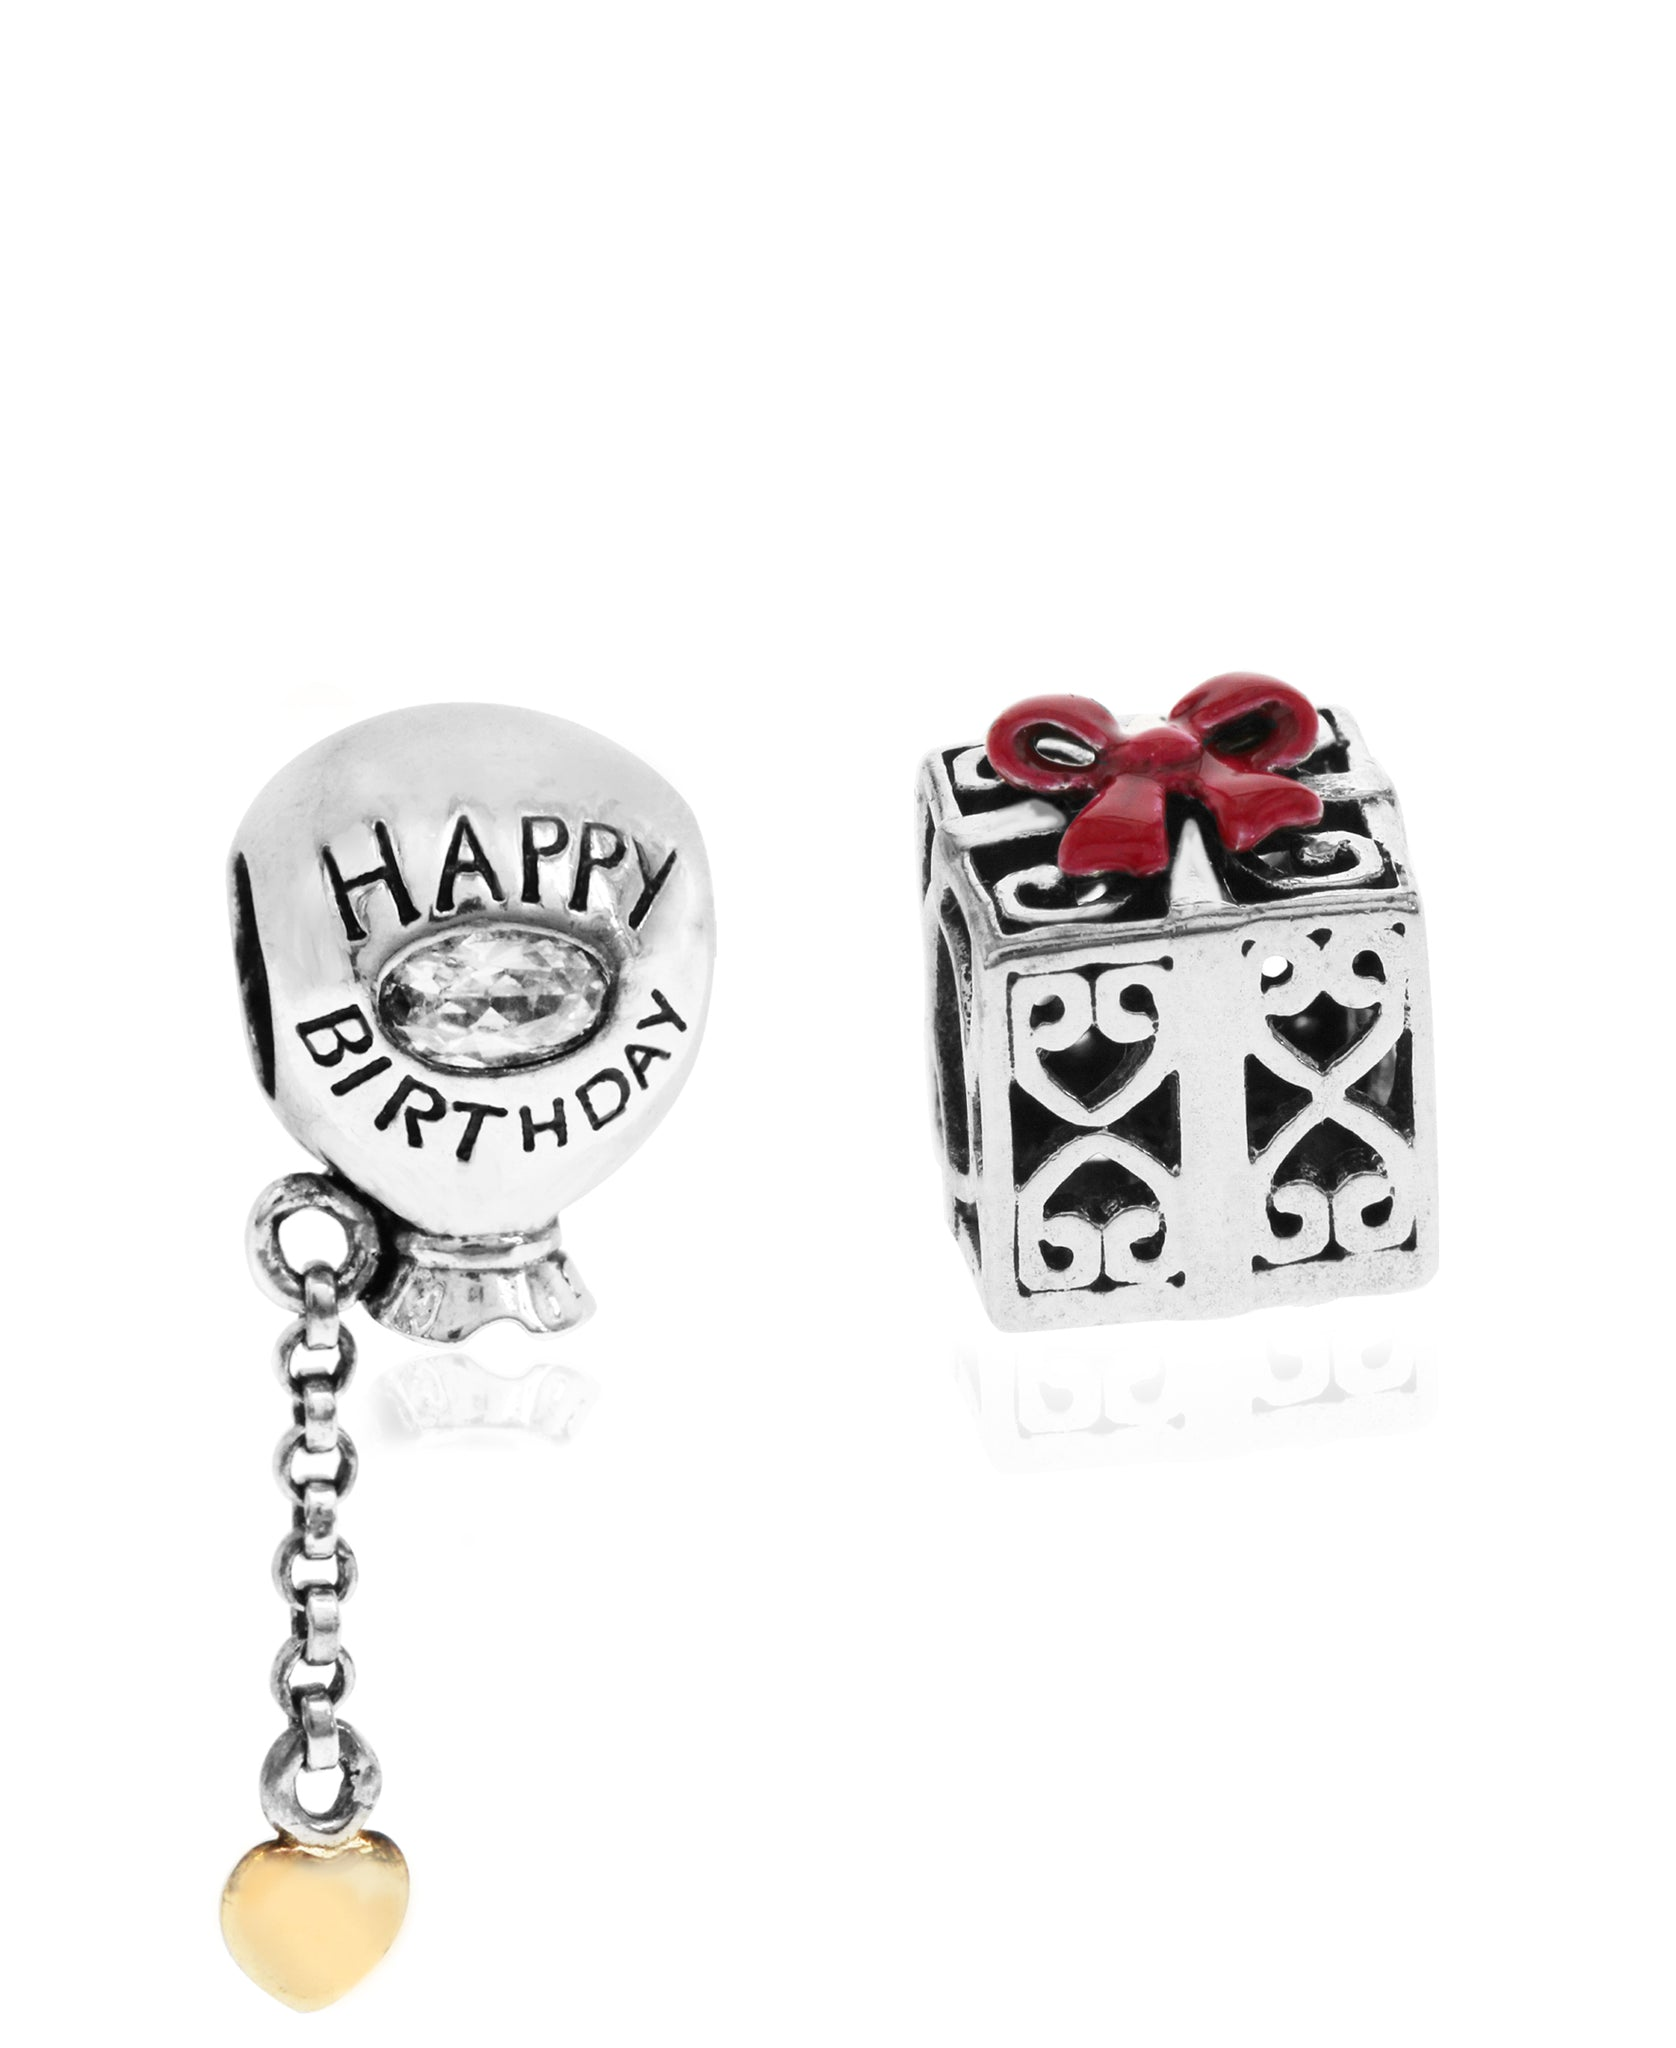 2-Pc. Set Happy Birthday Balloon & Gift Box Bead Charms in Sterling Silver & Gold-Plate - Rhona Sutton Jewellery